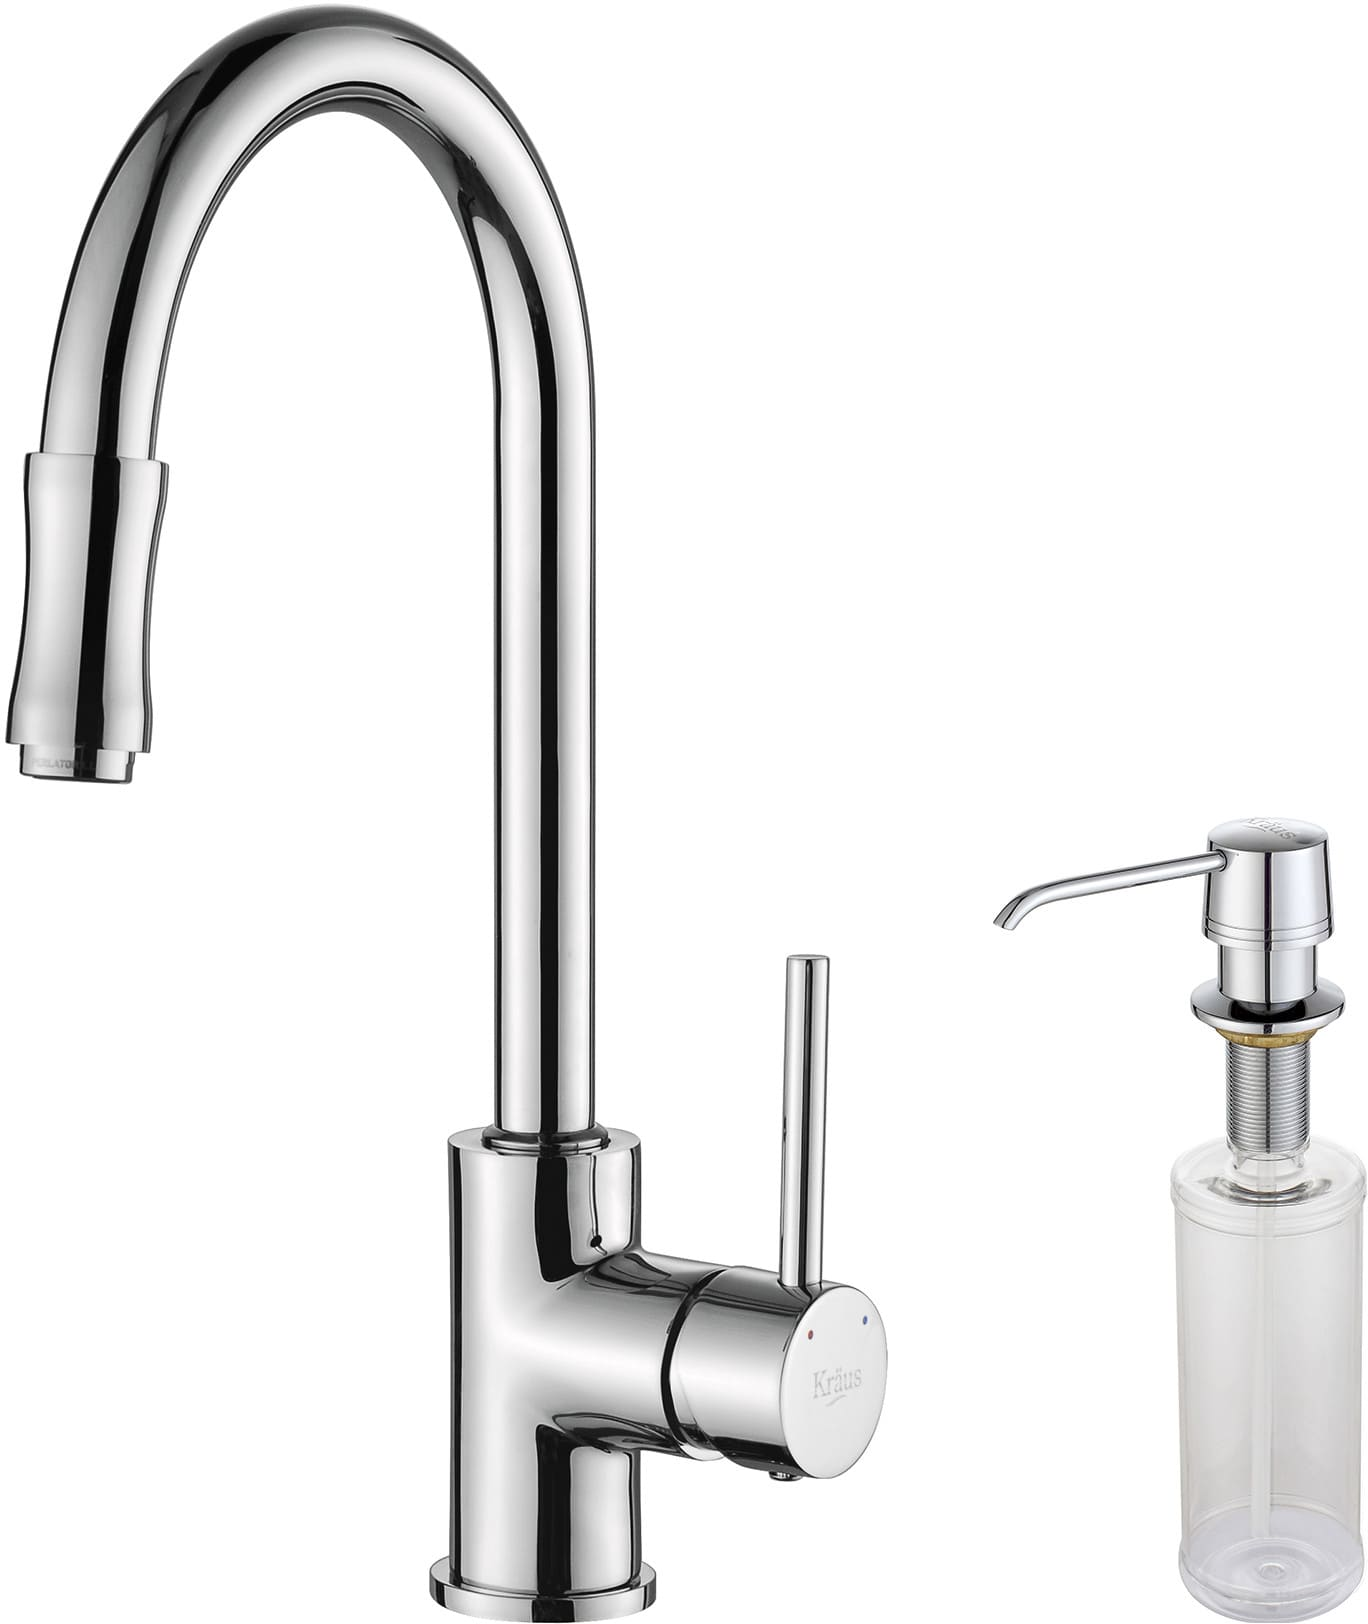 faucets kpf single touch stainless kraus sink dul steel lever dp amazon on out pull canada faucet kitchen